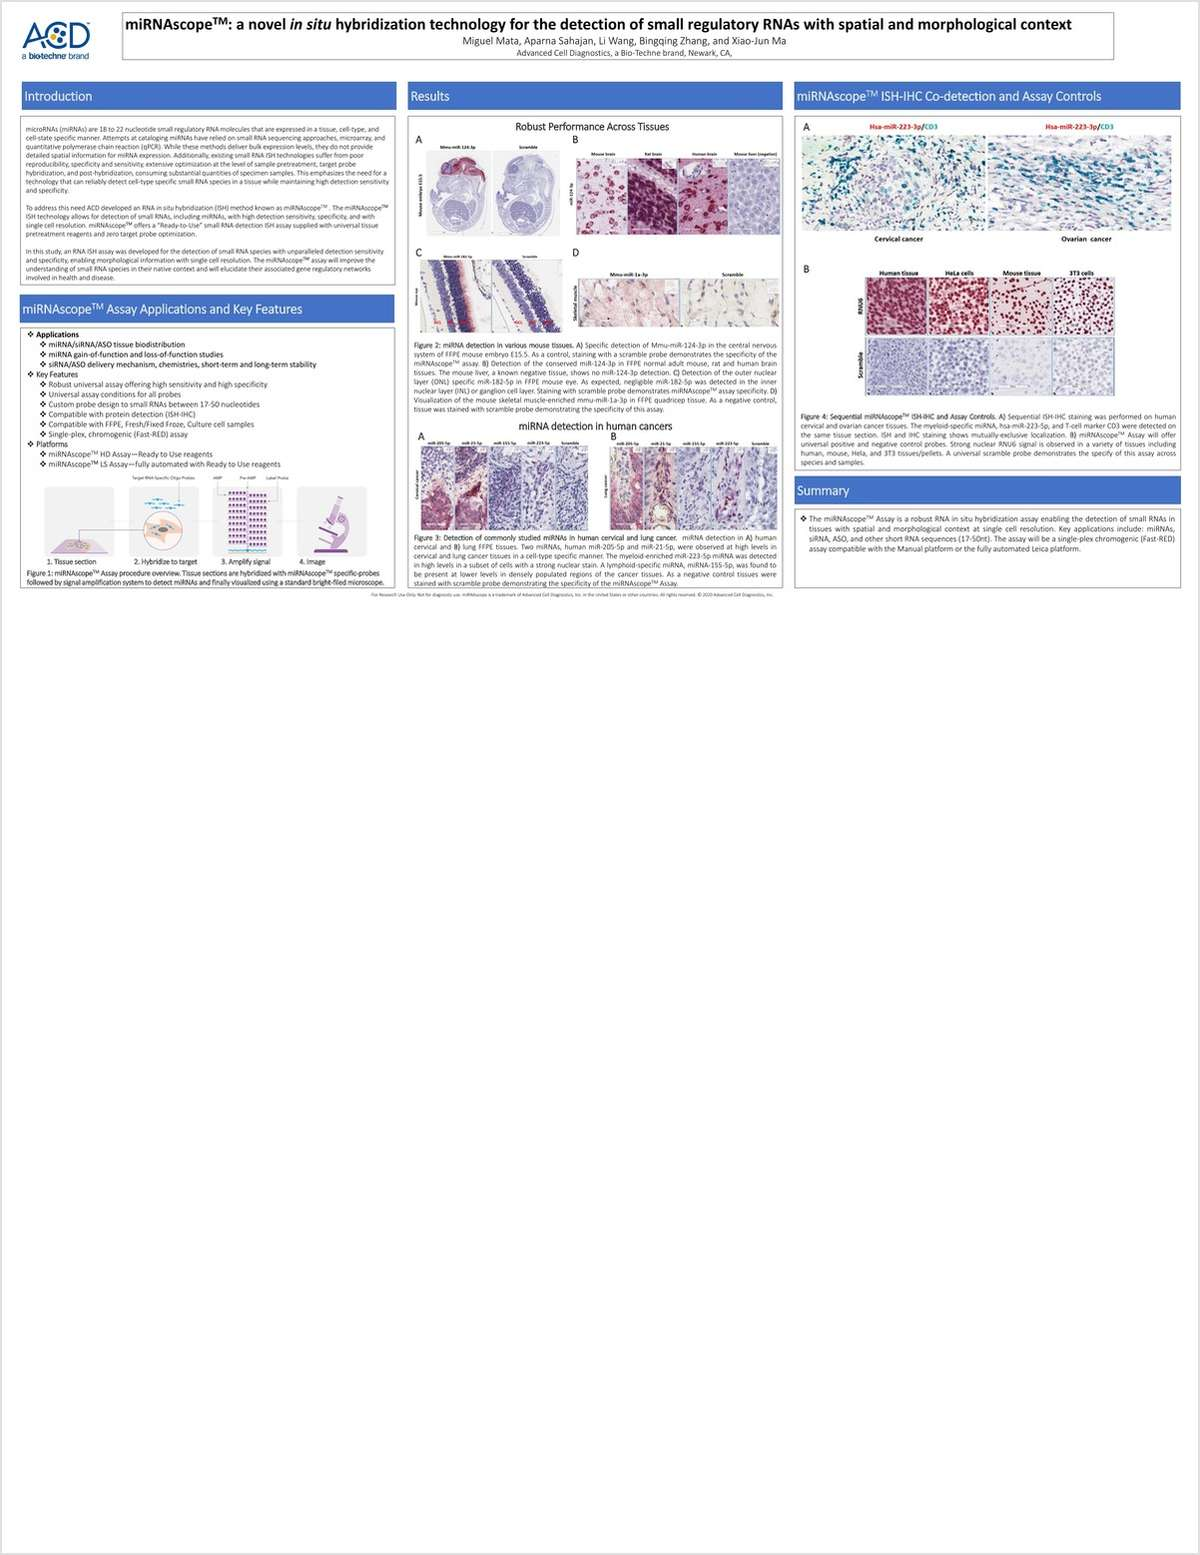 miRNAscope: A Novel In Situ Hybridization Technology for the Detection of Small Regulatory RNAs with Spatial and Morphological Context